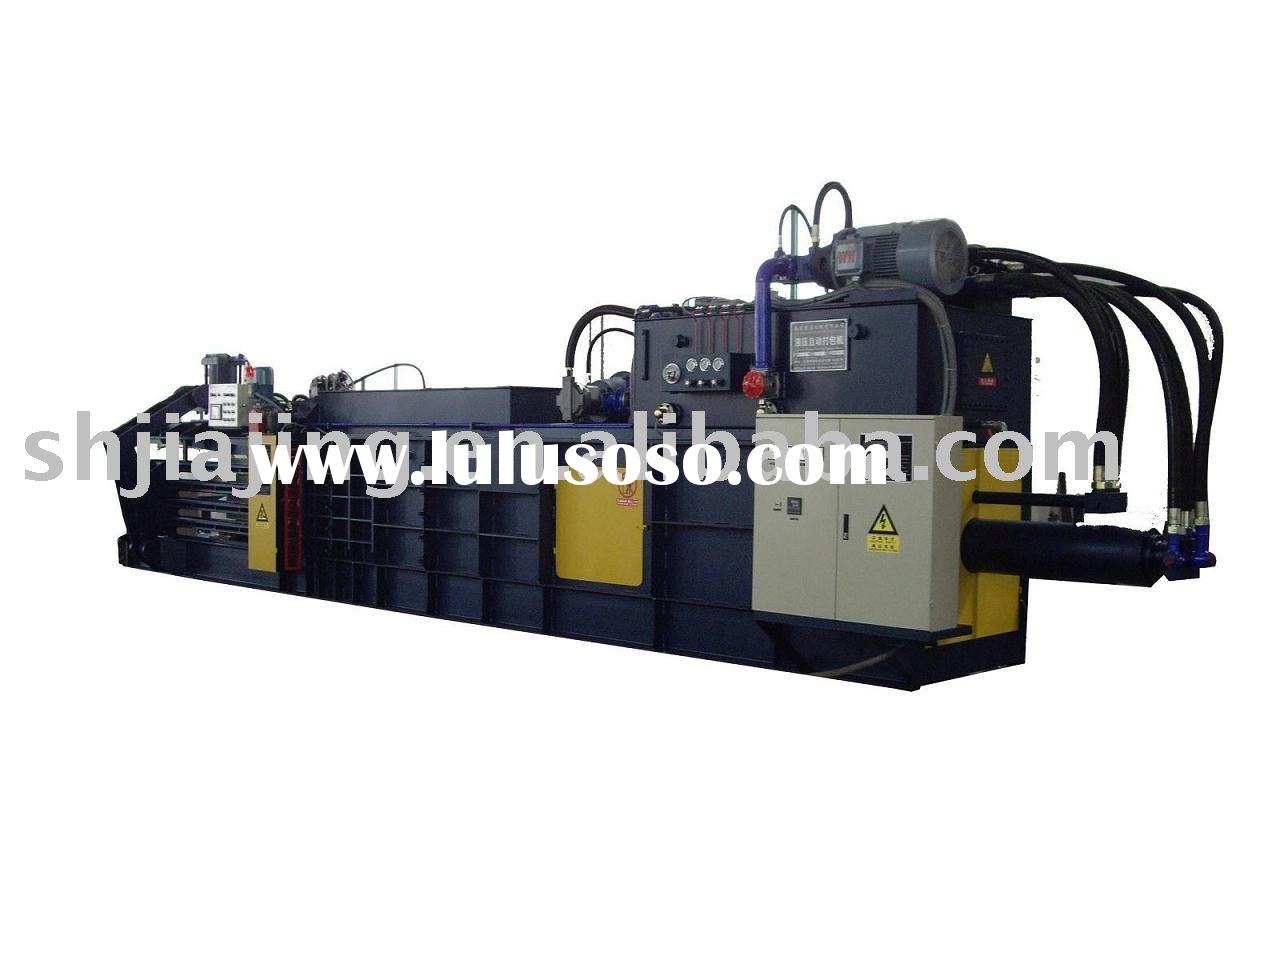 horizontal baling machine,horizontal hydraulic baler machine,horizontal press baler